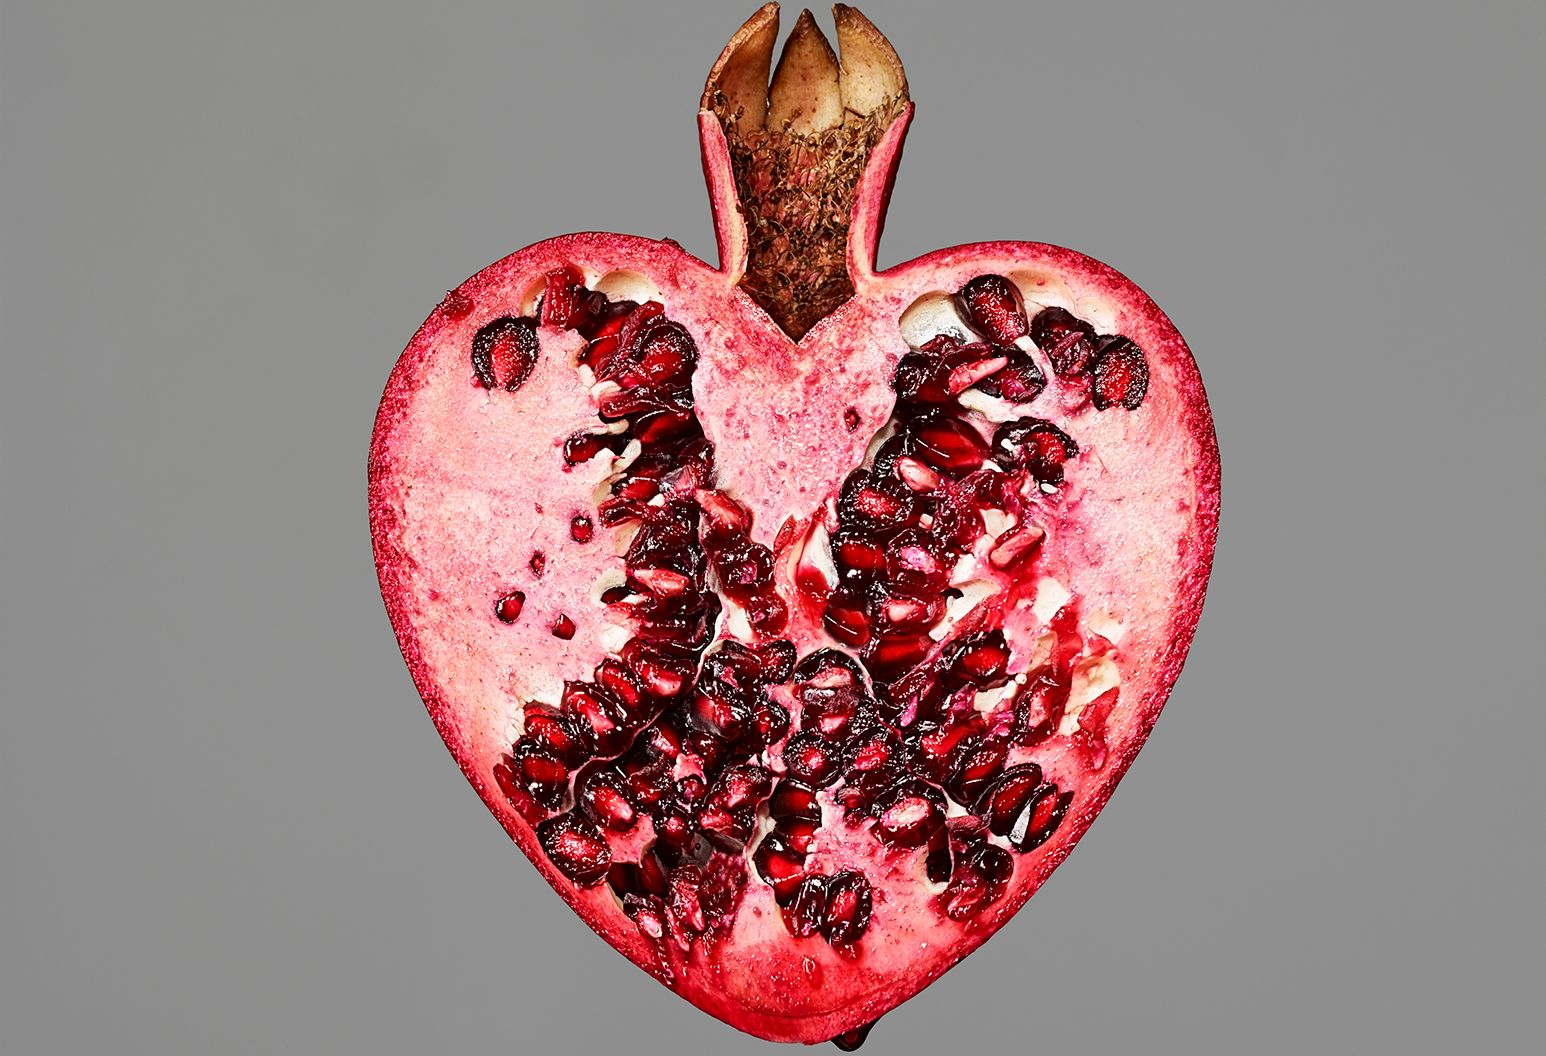 A heart shaped pomegranate is cut in half.